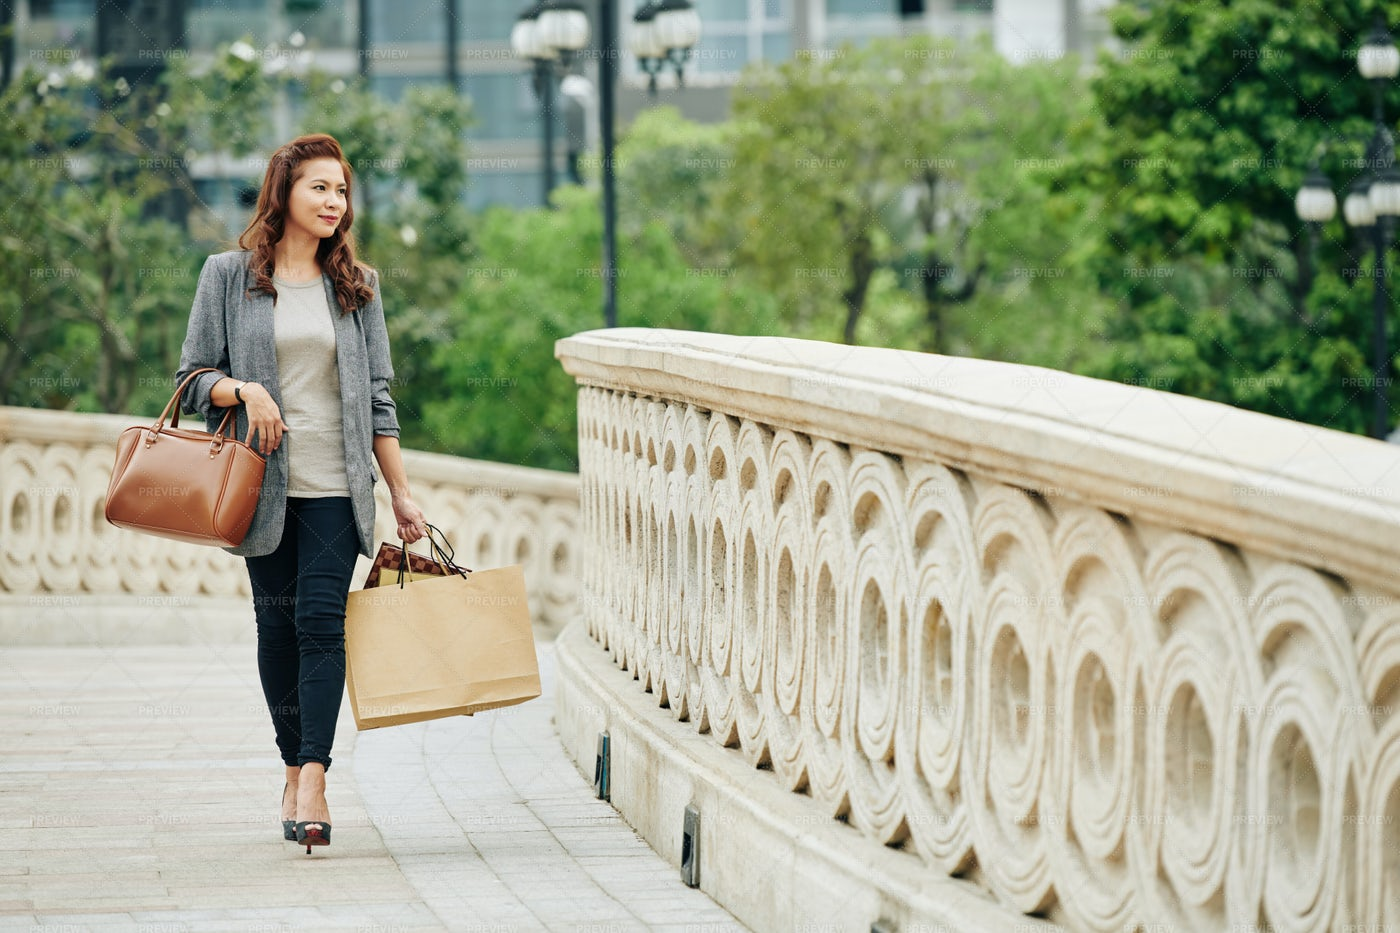 Elegant Woman With Shopping Bags: Stock Photos